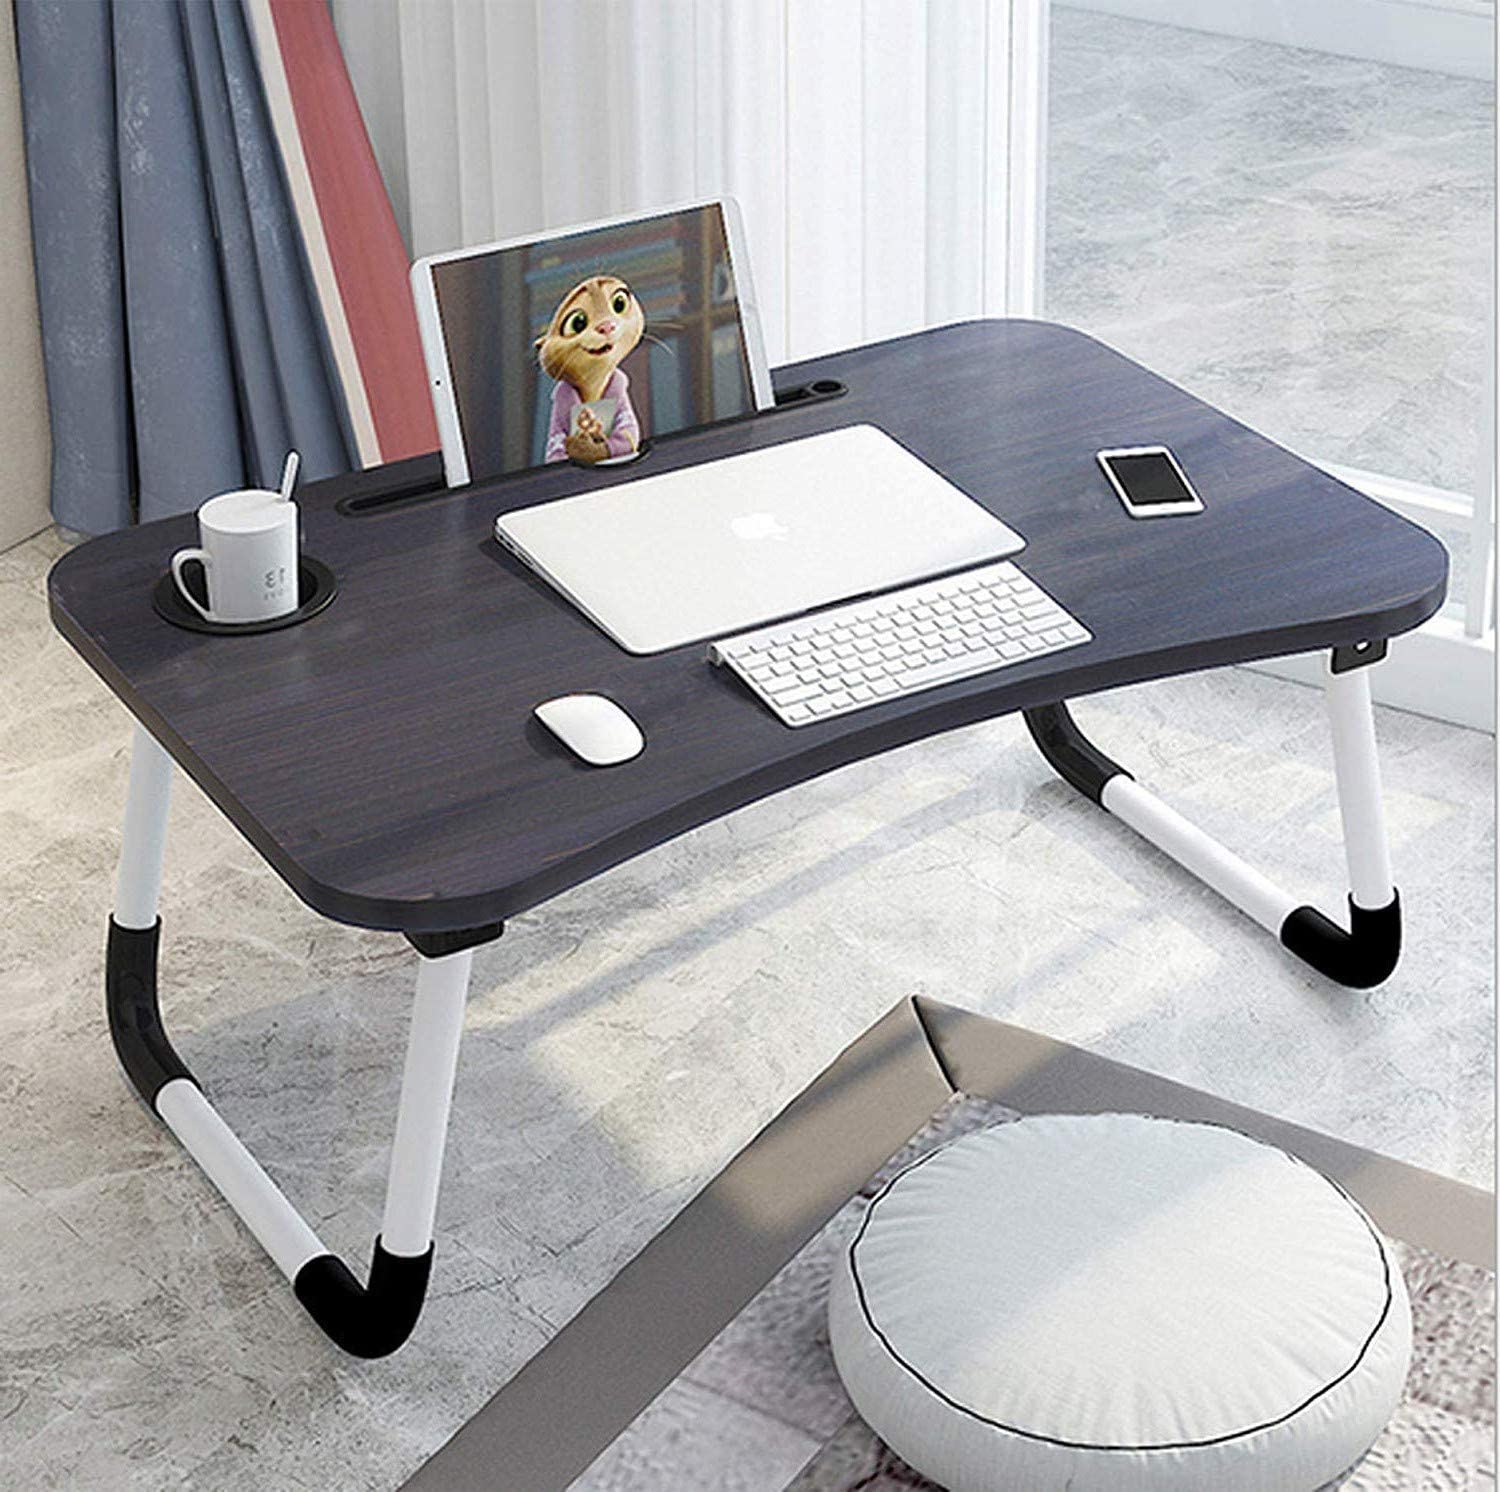 New Cherry Laptop Stand Adjustable Height Workstation Dorm Computer Tablet iPad